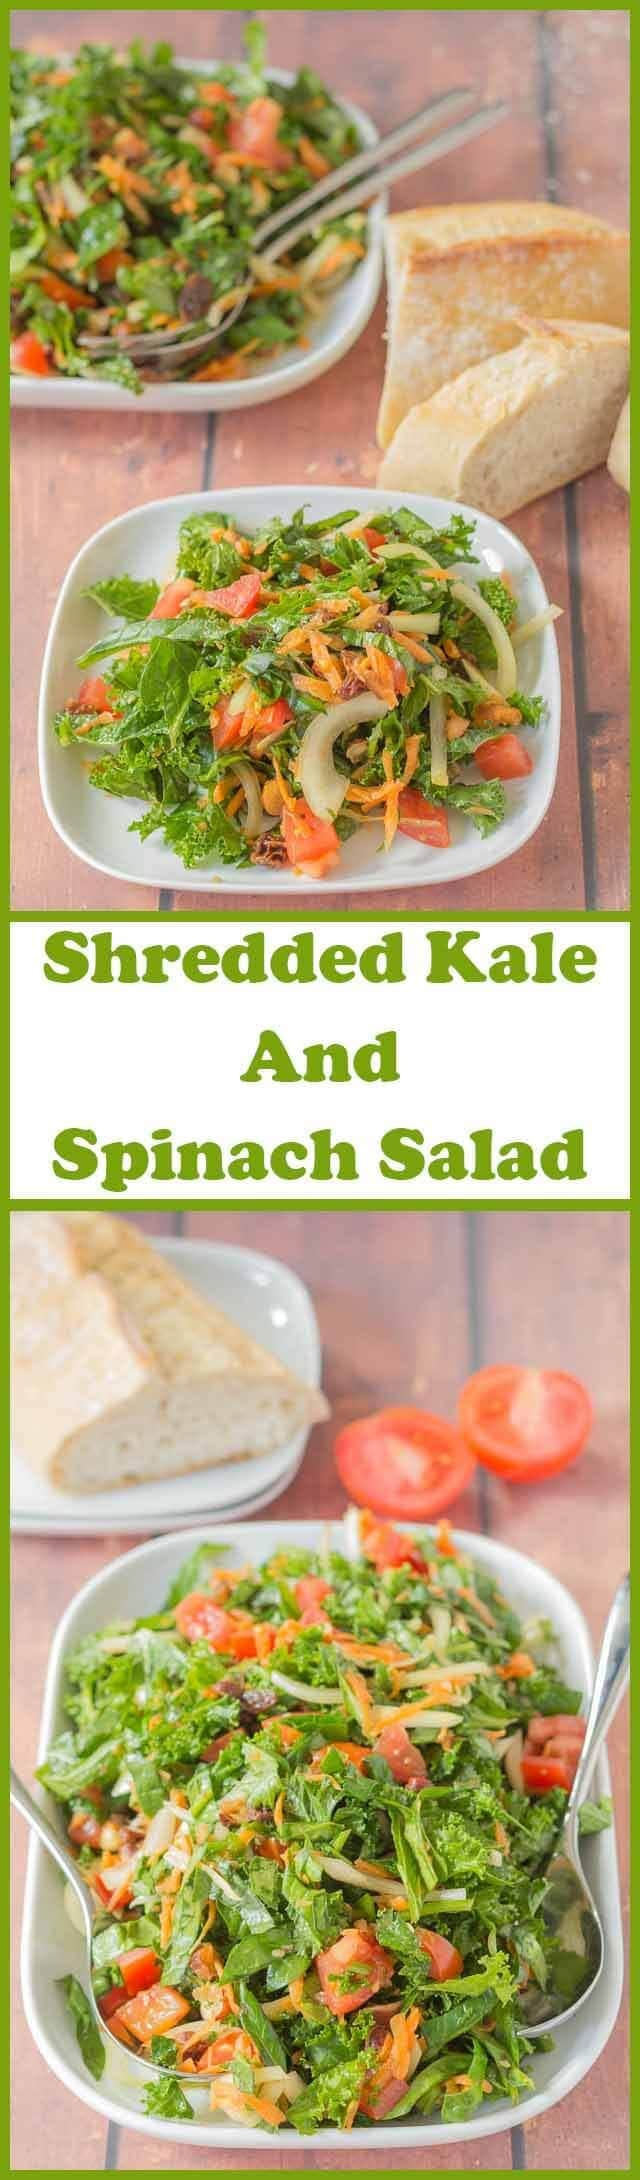 Shredded kale and spinach salad makes for a perfect dinner for two or an ideal side salad. It's easy to make, great for using up leftover kale and spinach and packed full of nutritional goodness.